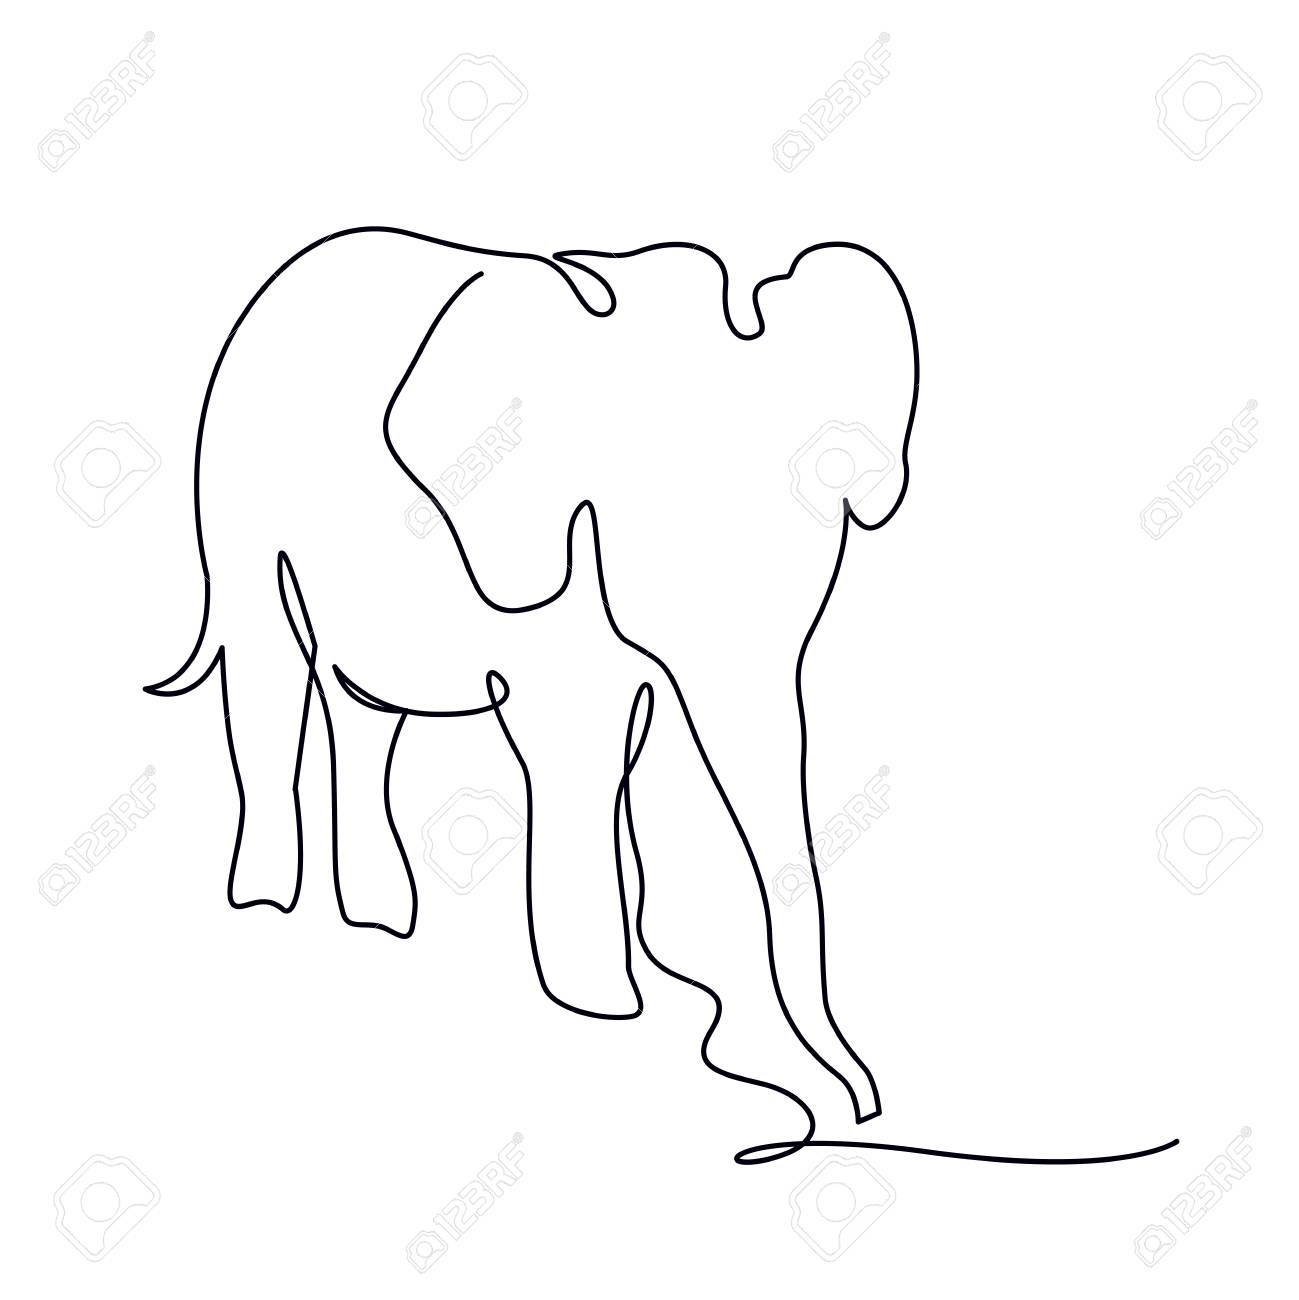 Elephant Continuous One Line Drawings Wild Large Animals Vector Royalty Free Cliparts Vectors And Stock Illustration Image 124610124